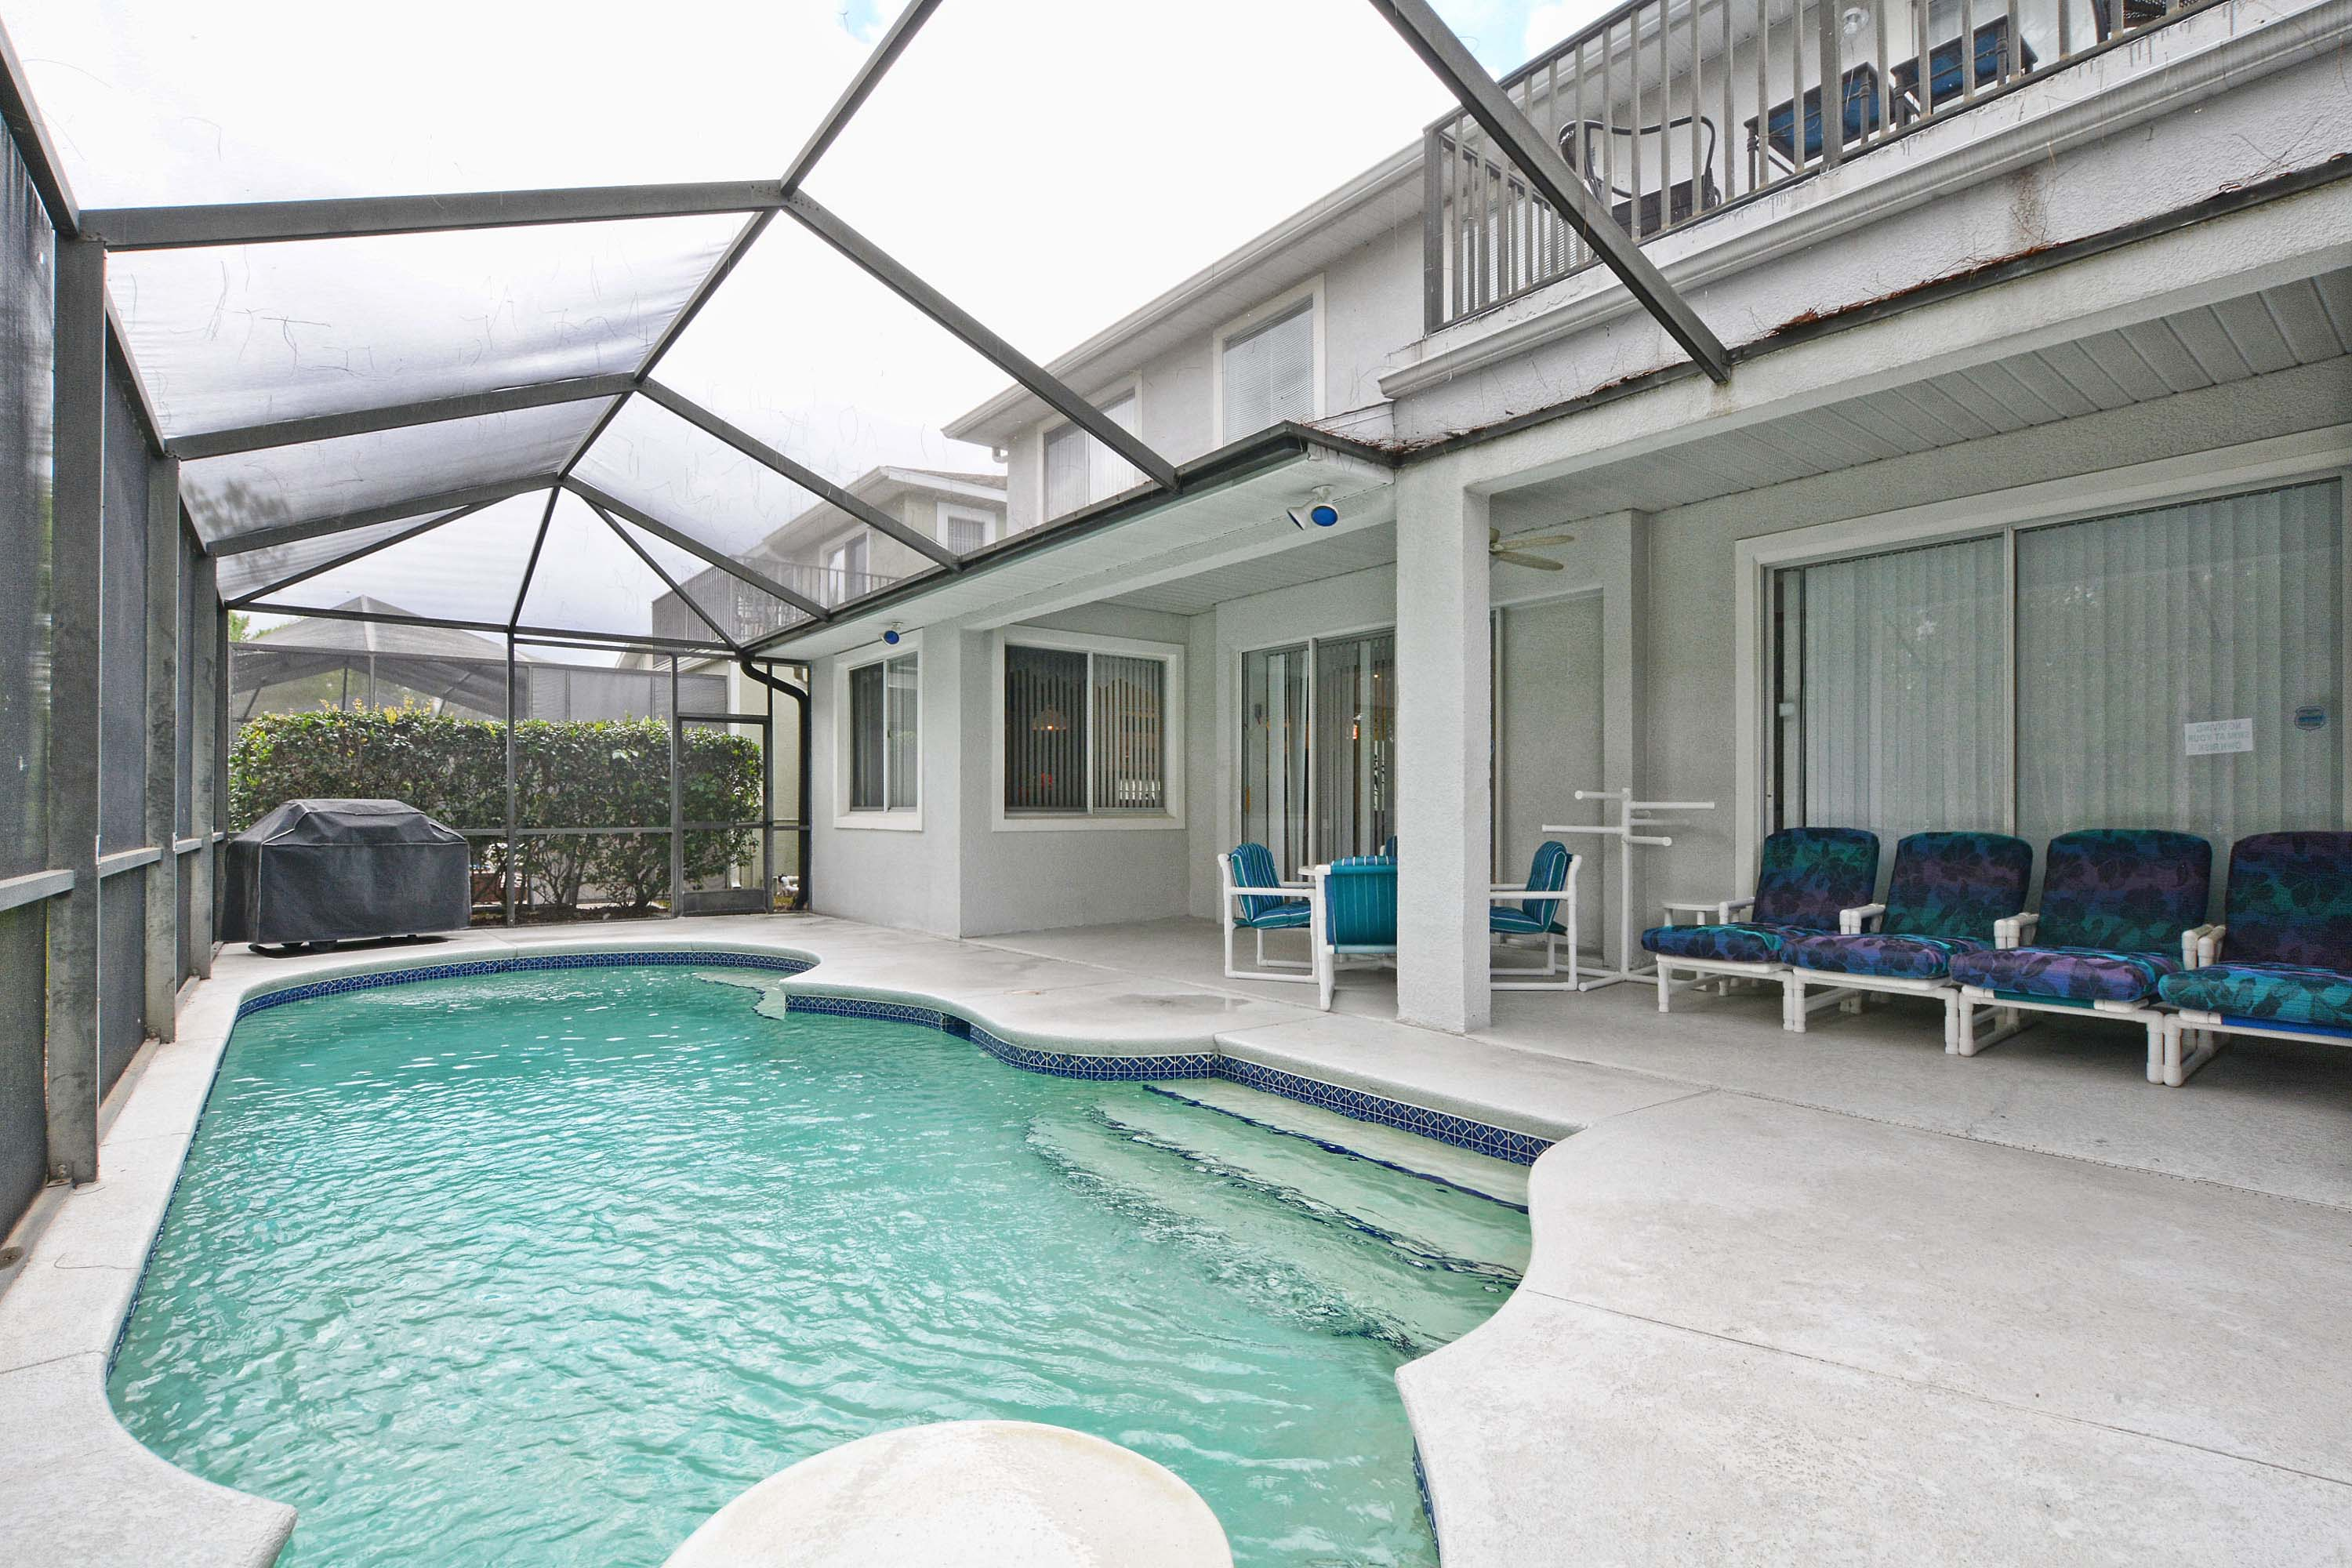 Florida Vacation Home Gallery